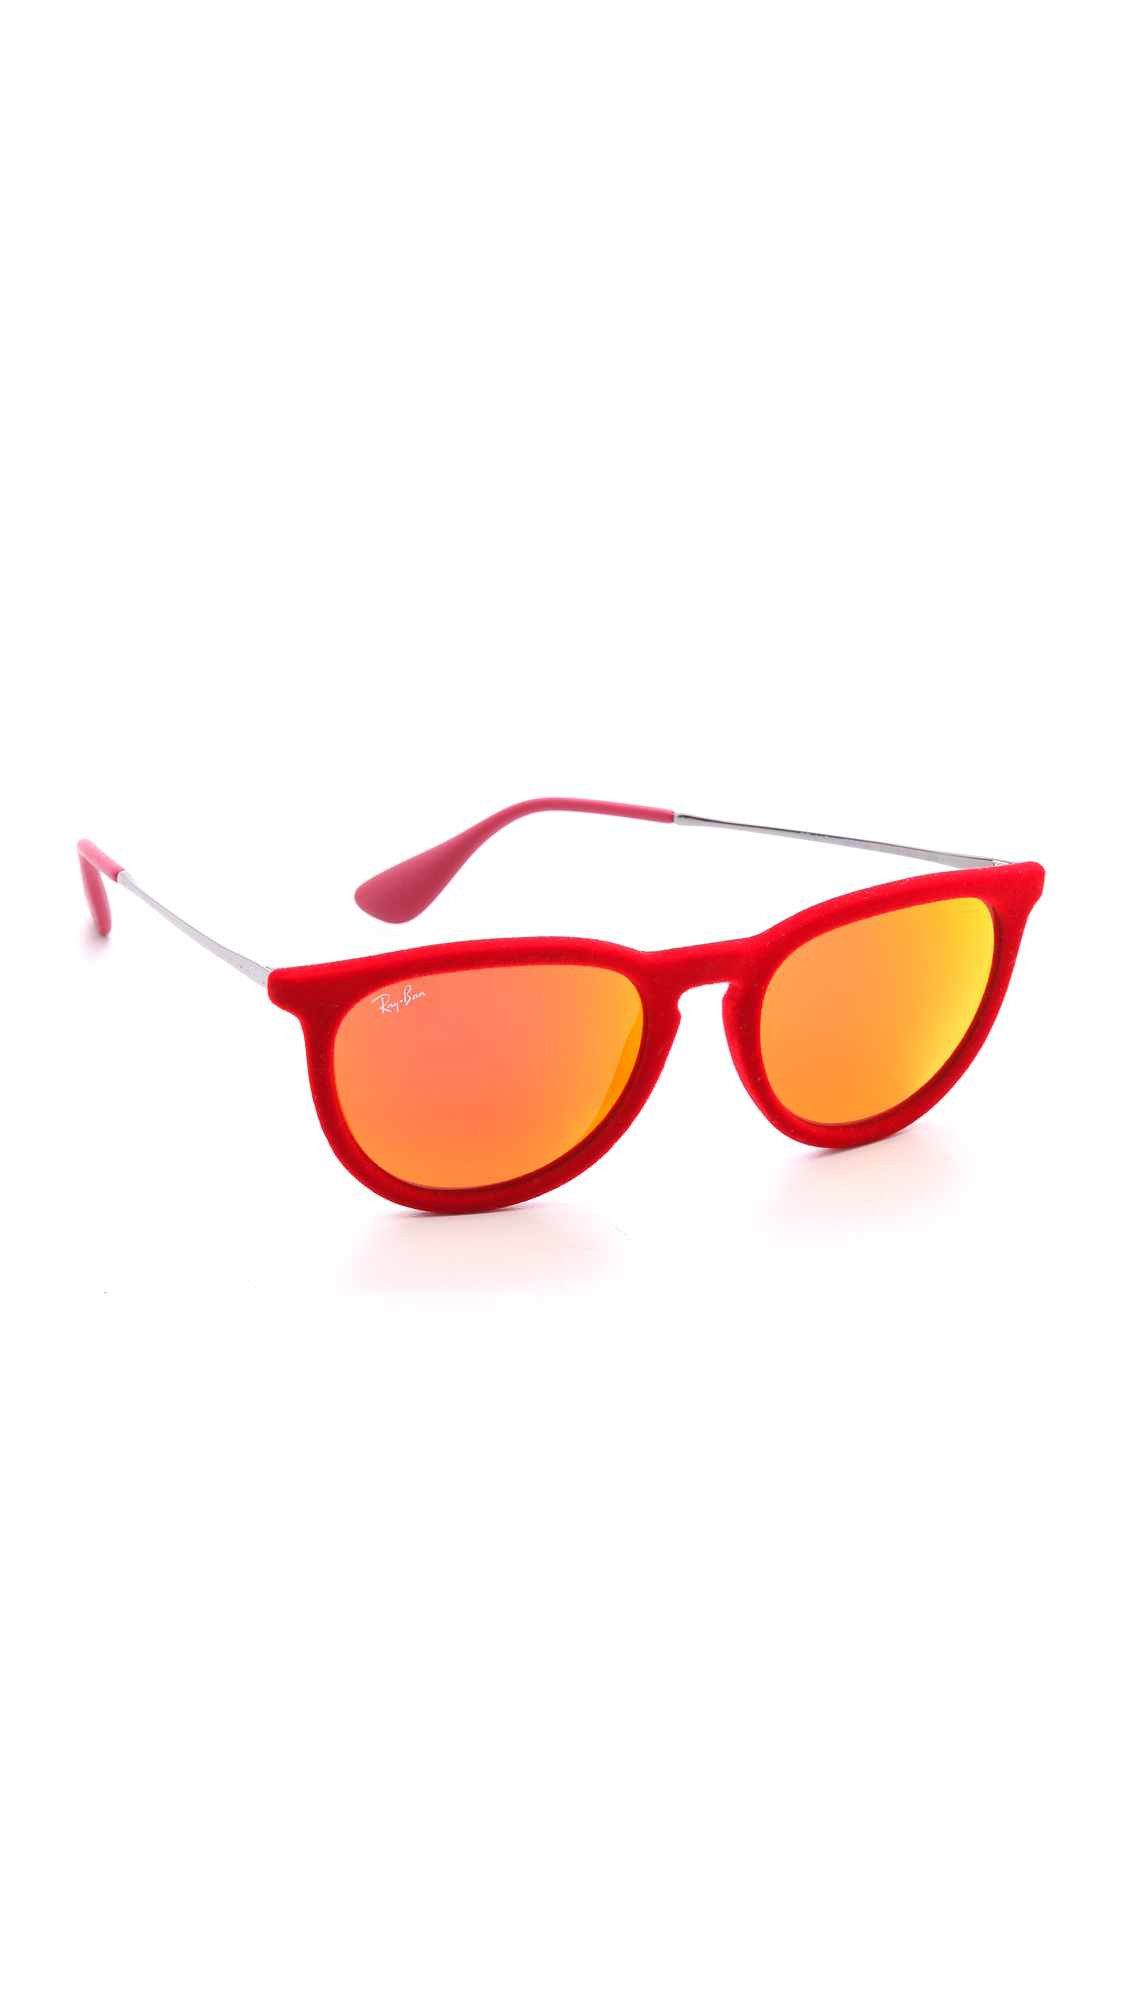 Browse the Sunglass Hut Online selection of Ray-Ban sunglasses, including styles like Wayfarer, Aviator and Clubmaster. Free shipping and returns on all orders.